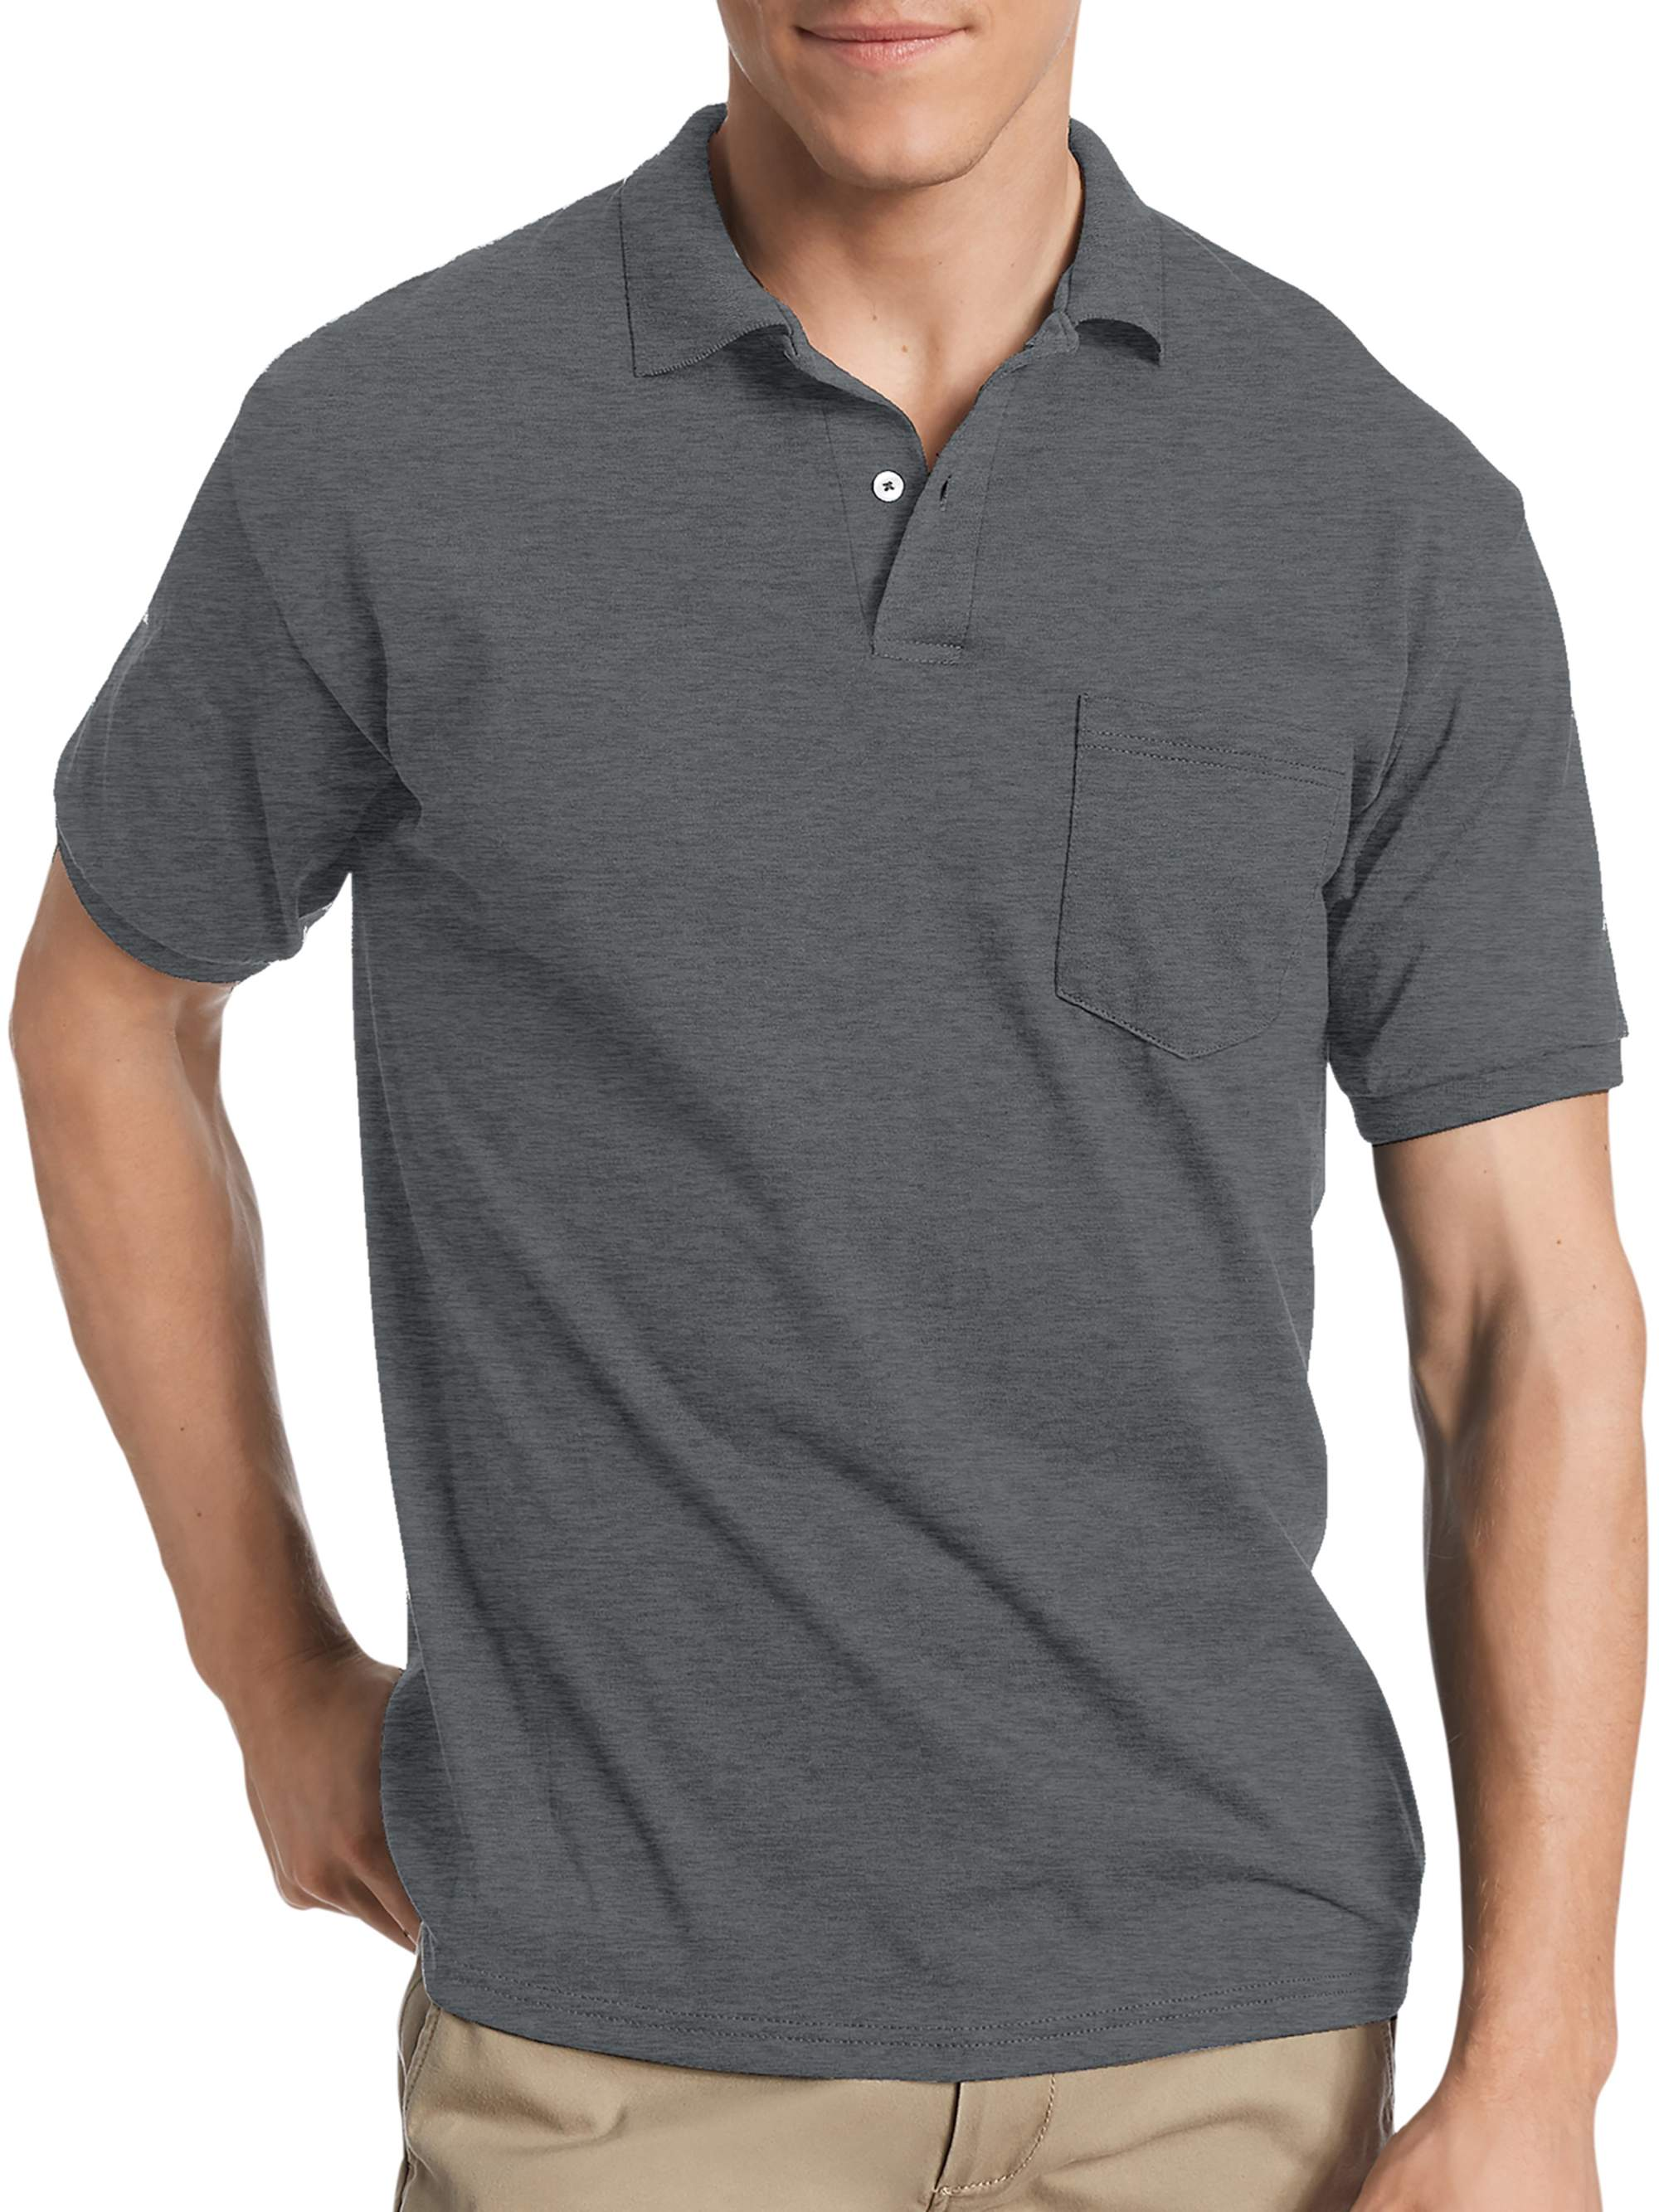 Hanes Big Mens Comfortblend Ecosmart Jersey Polo With Pocket